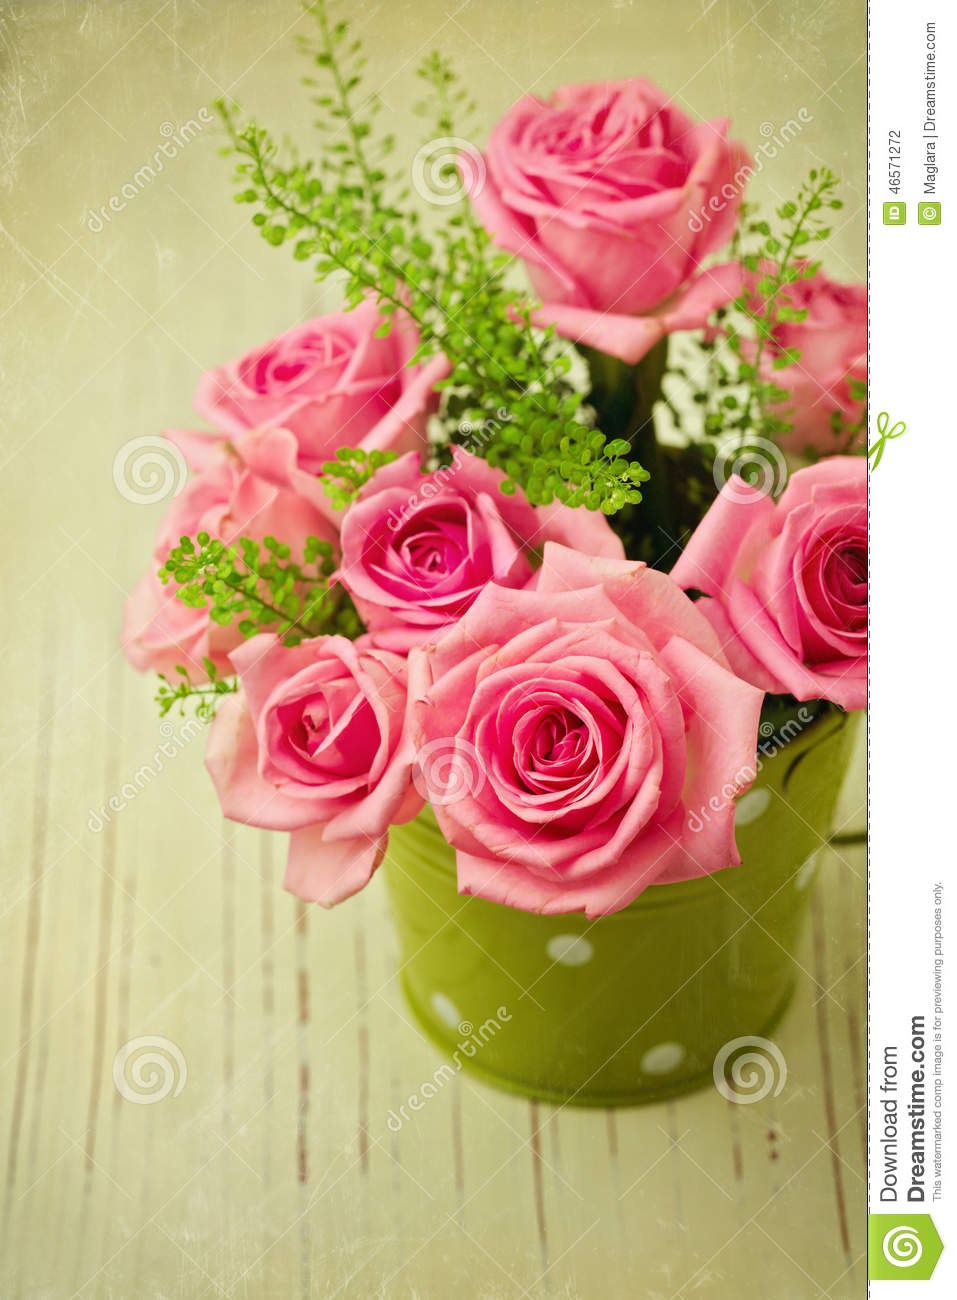 Vintage Photo Of Rose Flower Bouquet Stock Photo - Image of rose ...